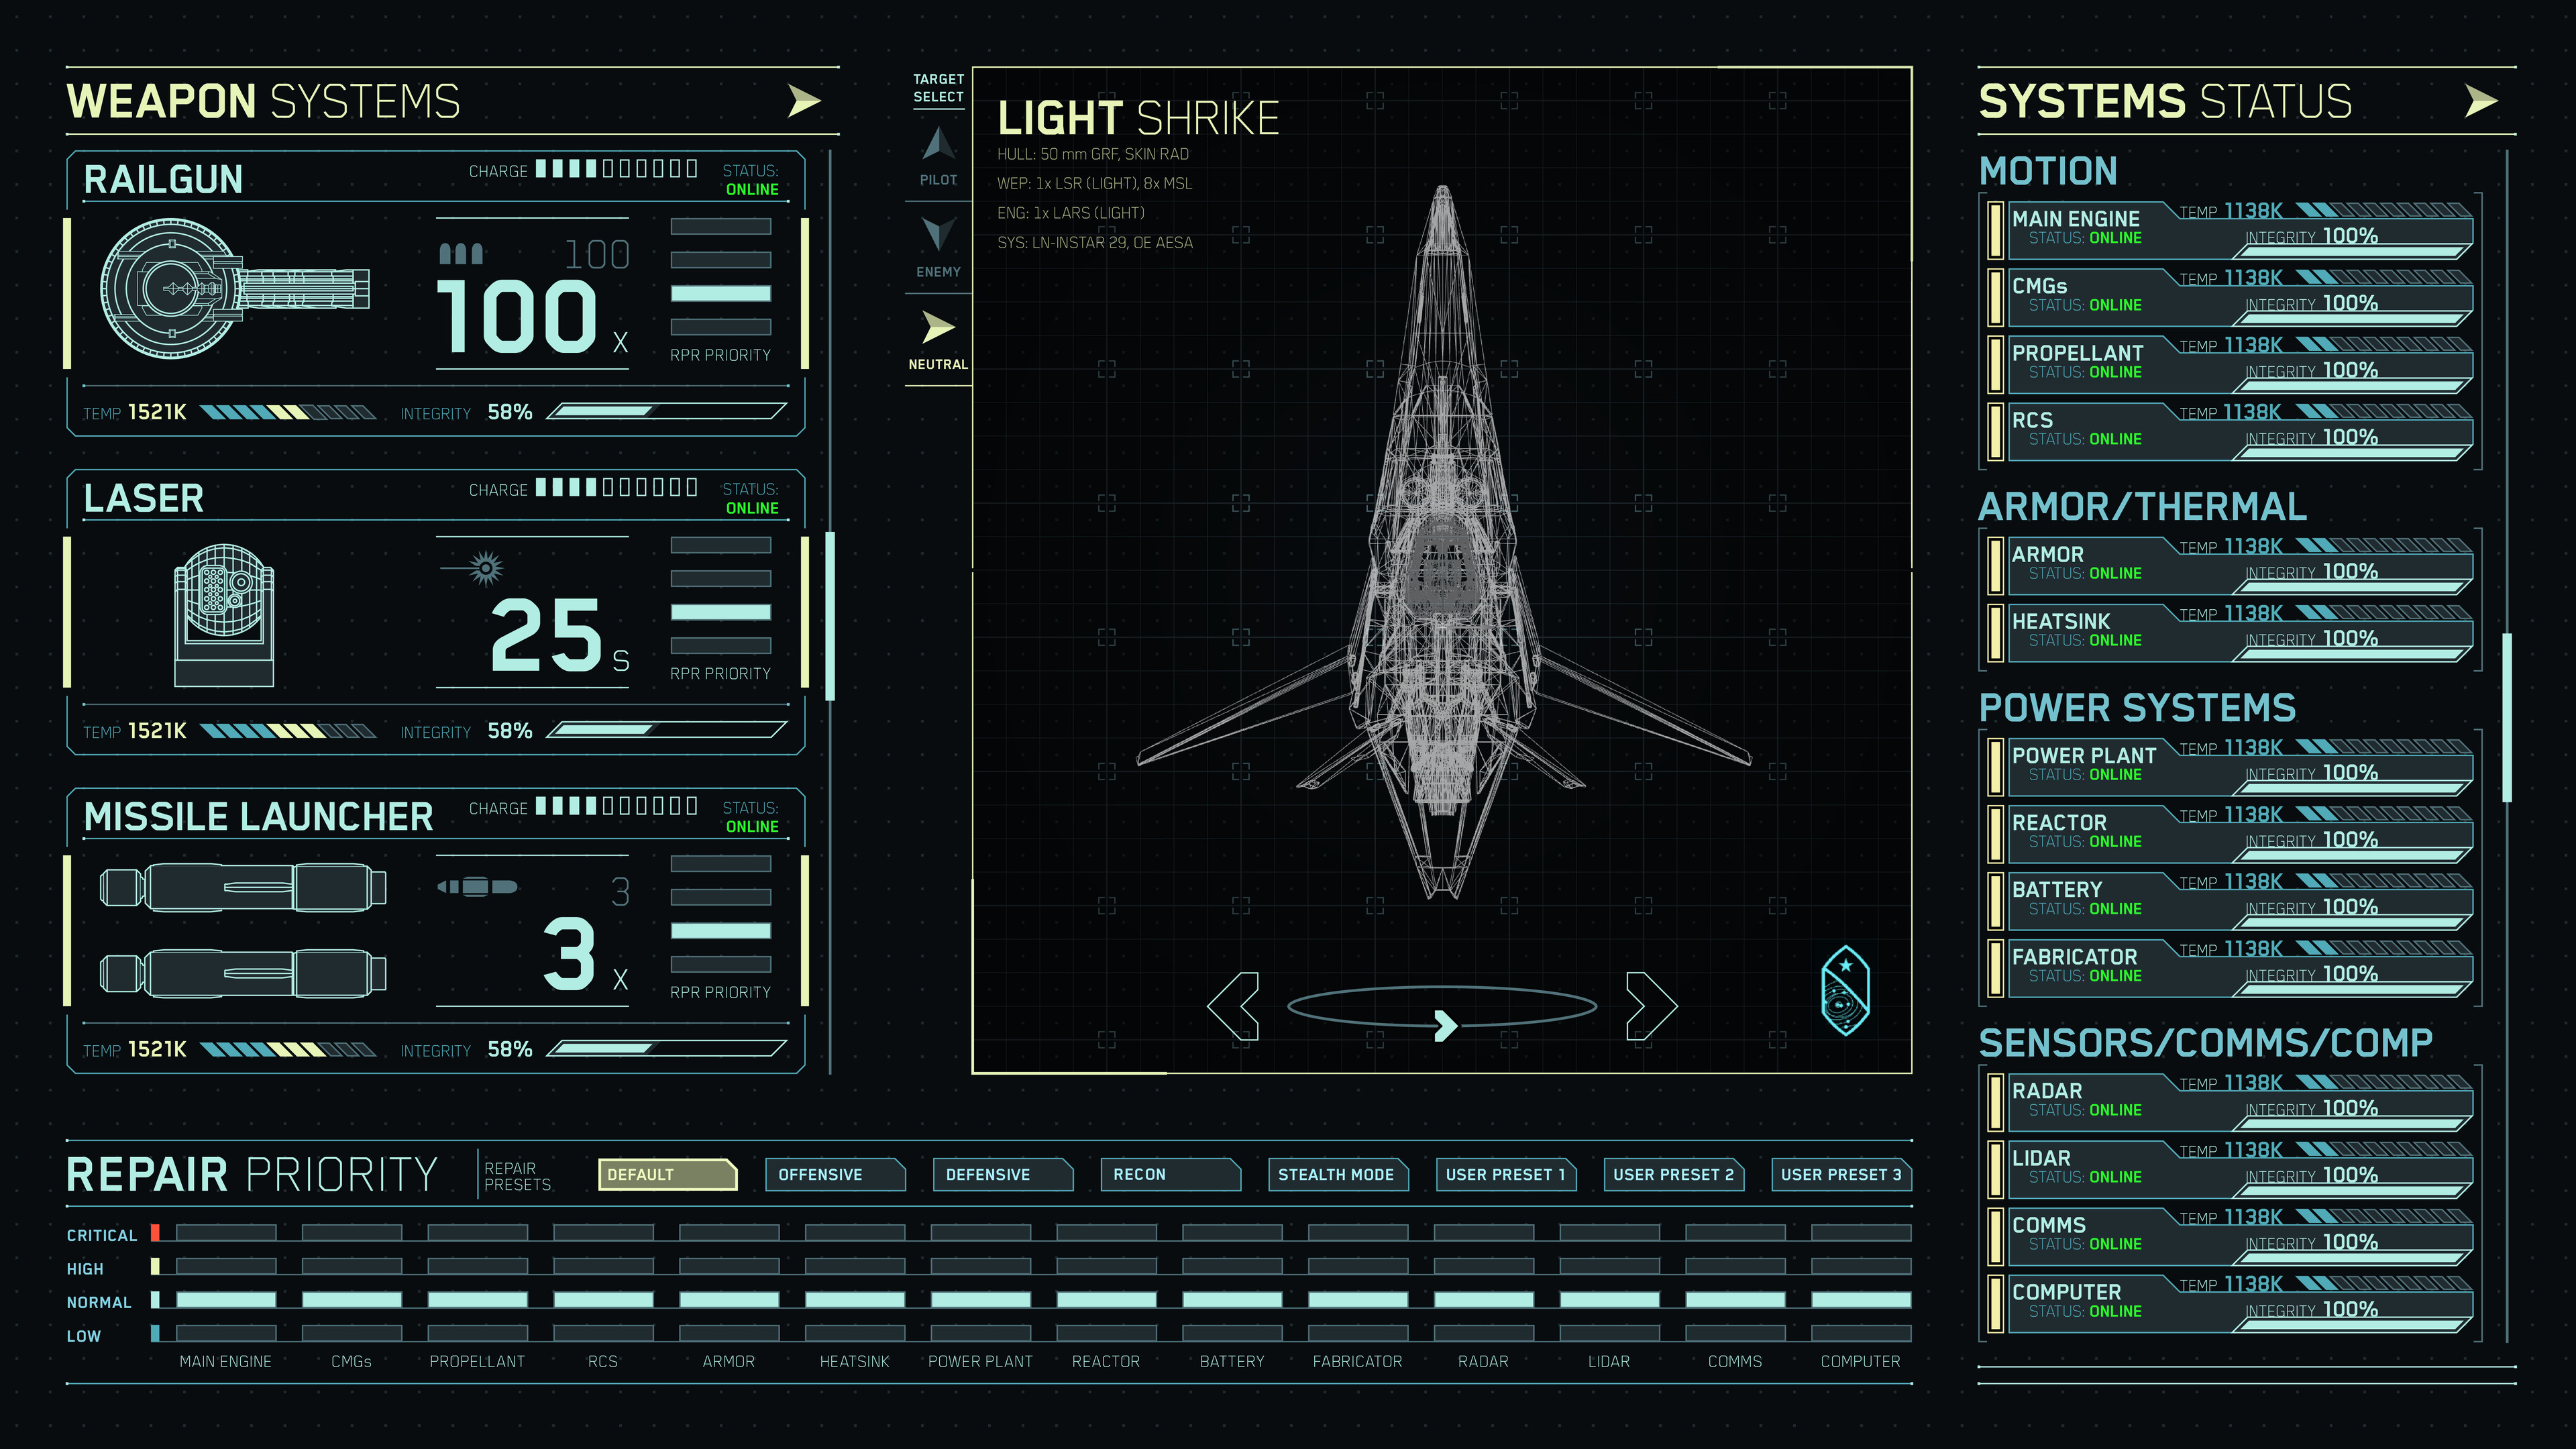 An example of looking at an allied ship's systems status.